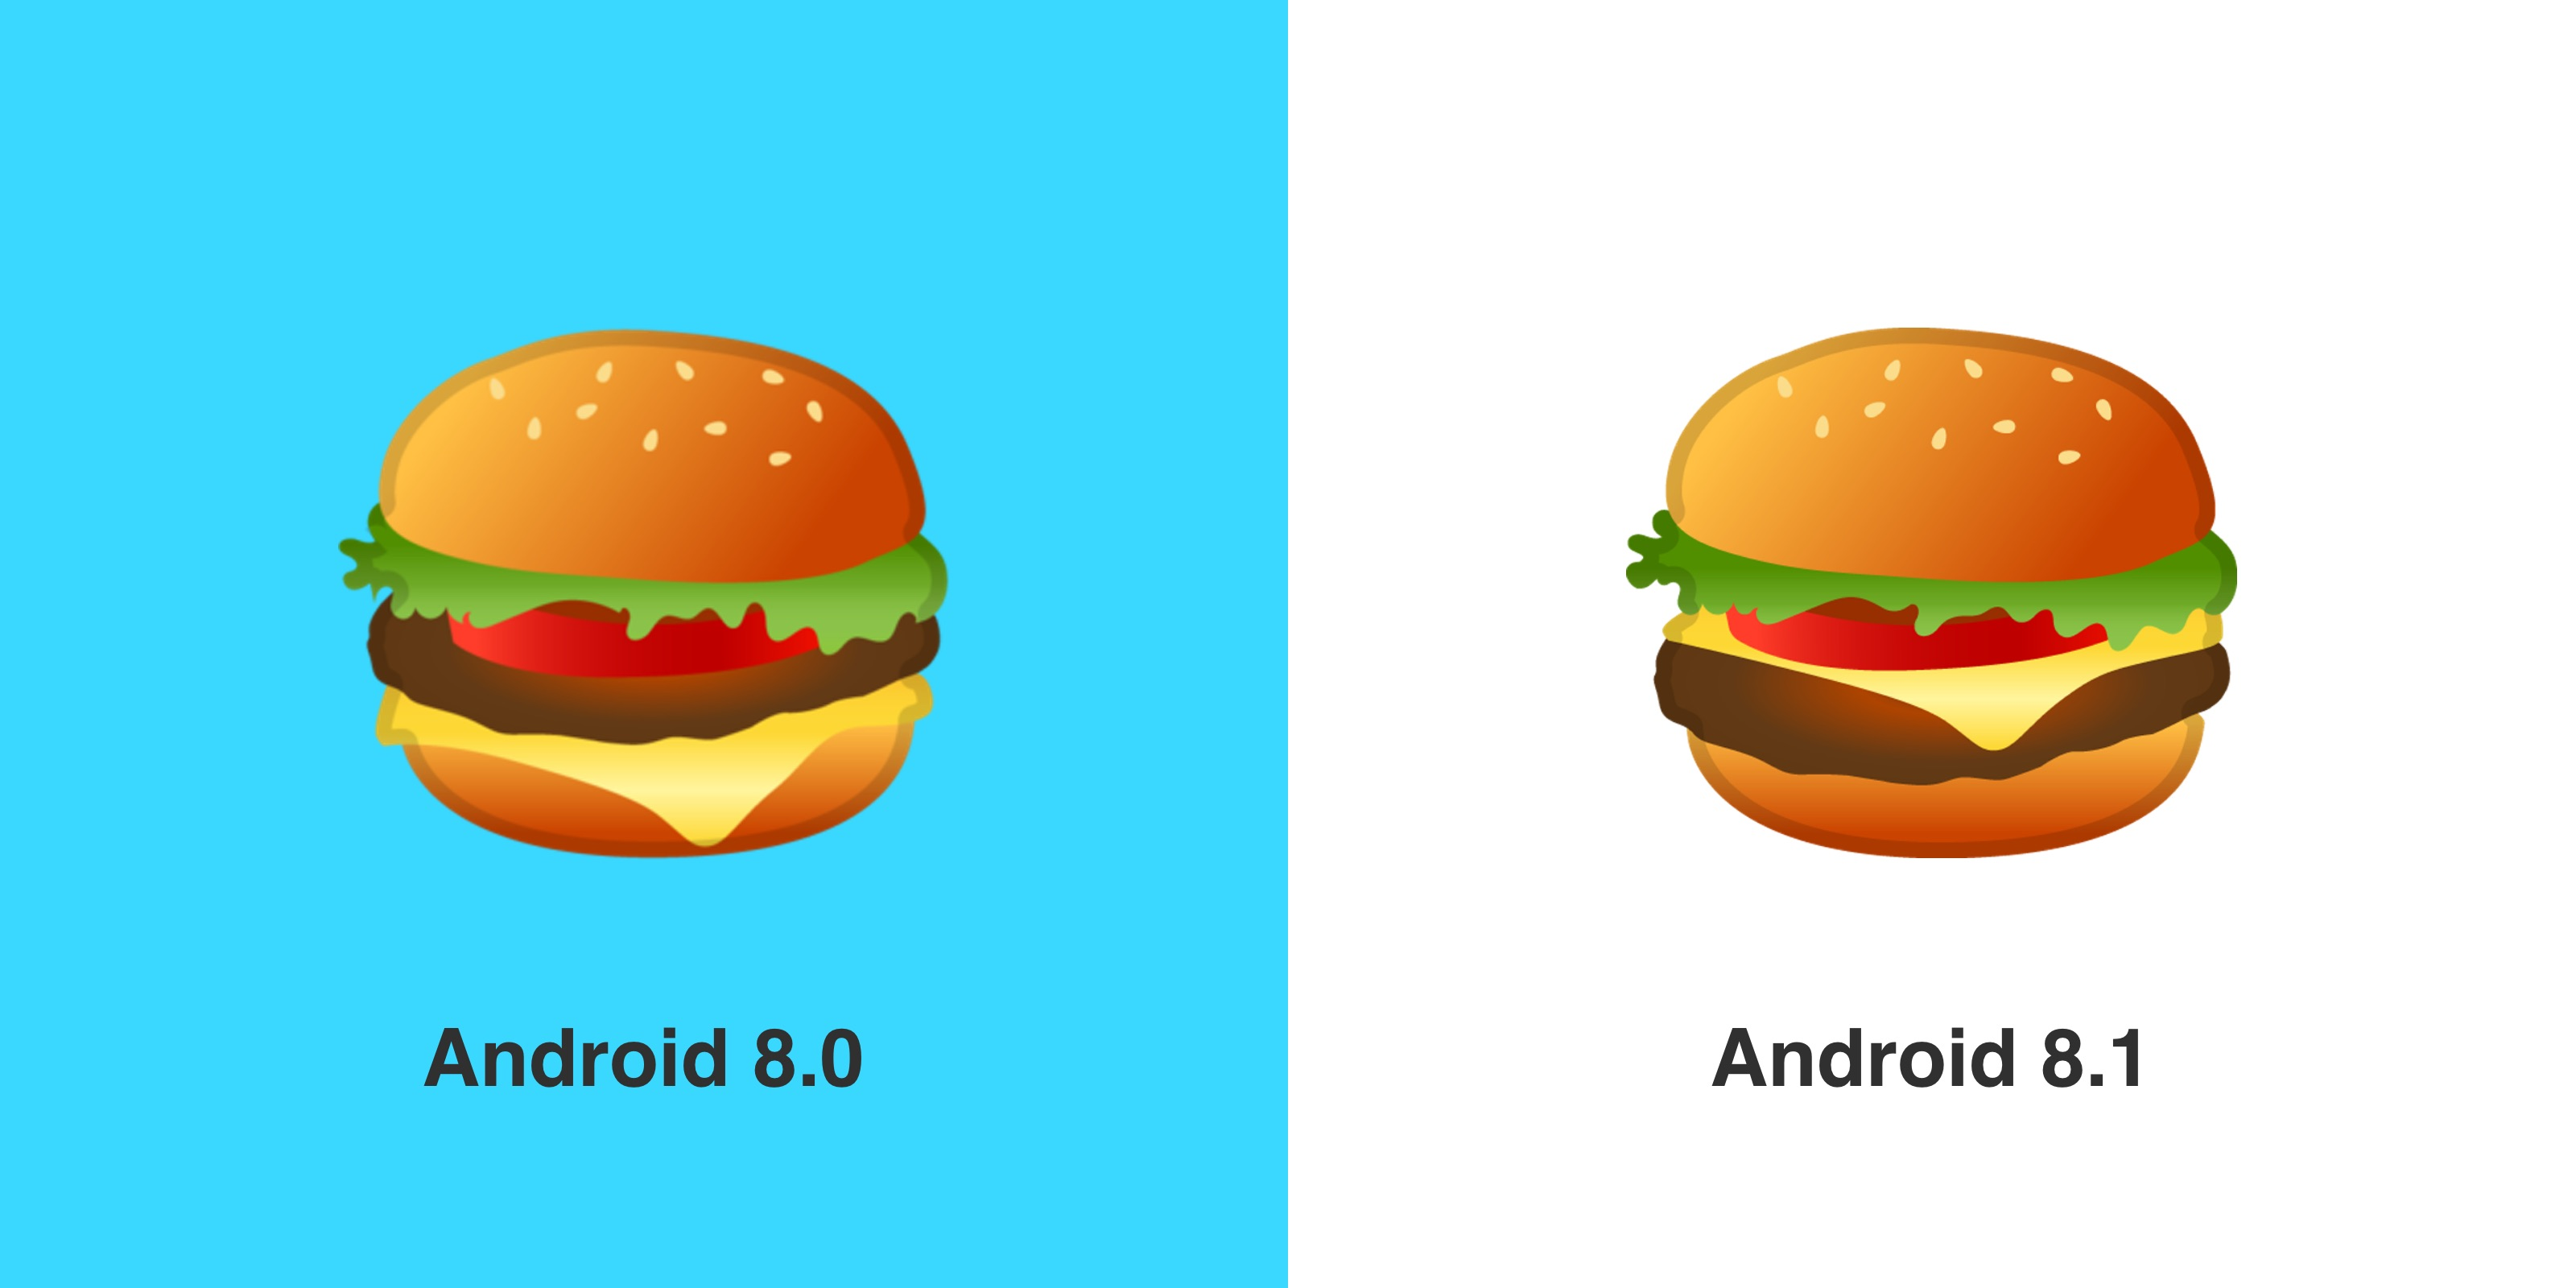 google-burger-emoji-before-after-emojipedia